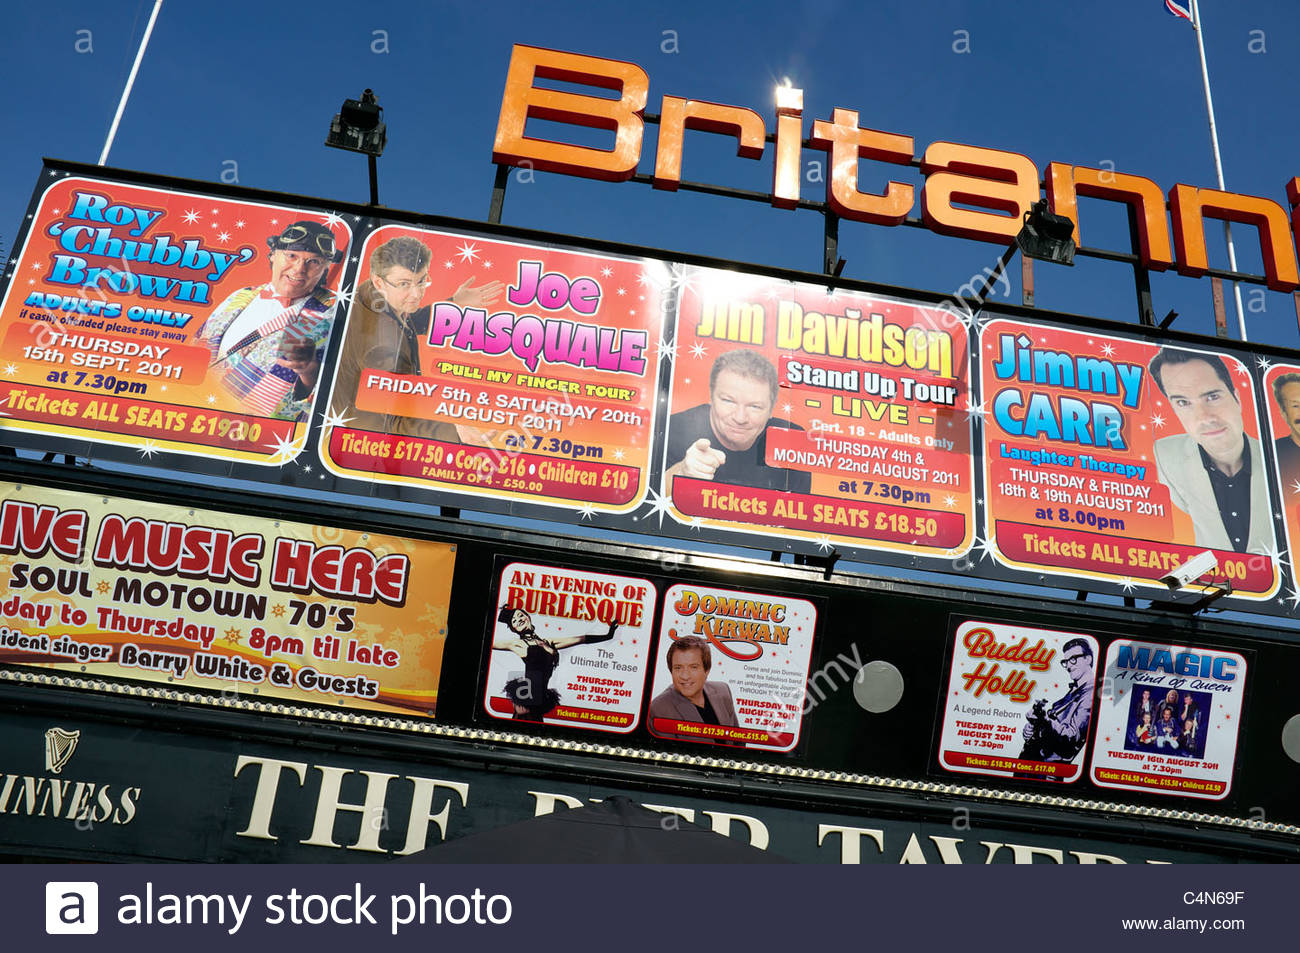 Advertising hoarding for seaside entertainment evening shows in Great Yarmouth, Norfolk, UK. - Stock Image